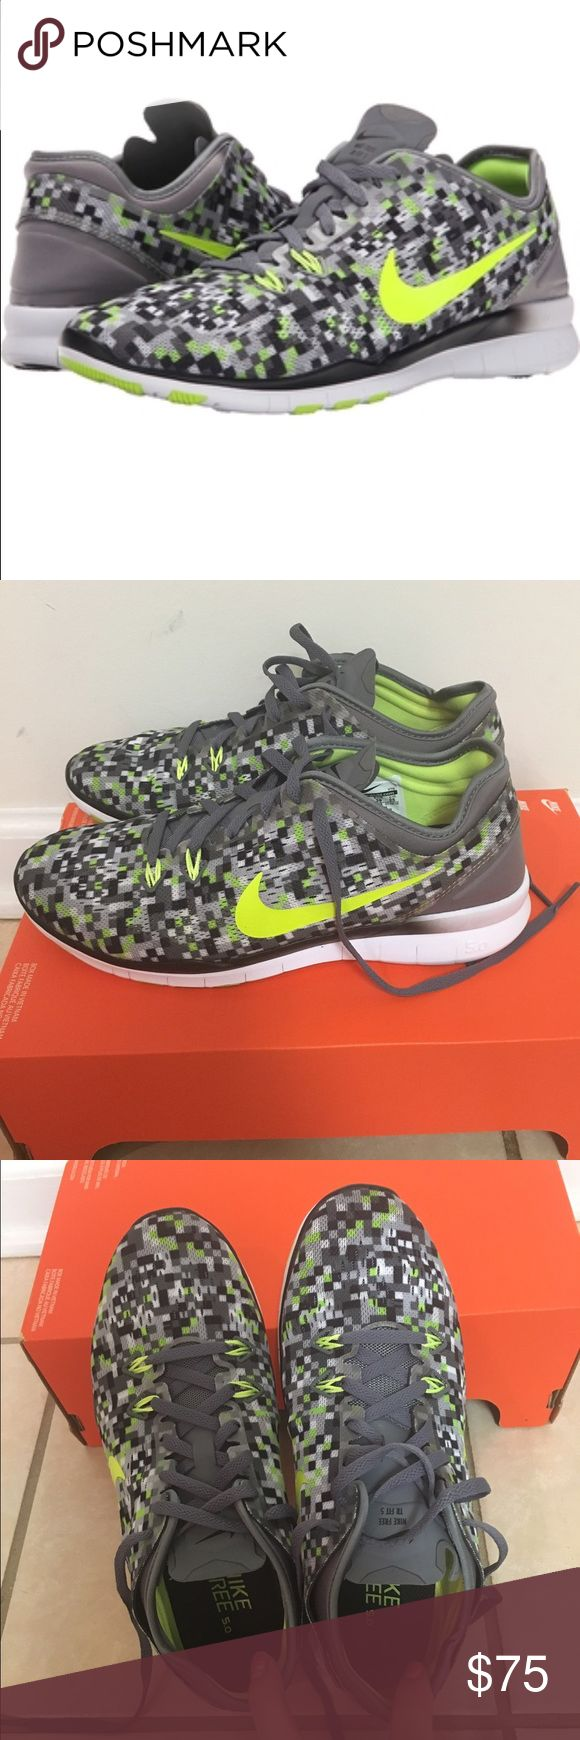 NWT Nike women's free runs NWT Nike women's size 8 free runs 5.0 TR fit PRT  These are so cute and perfect for a workout! I love the neon!  Nike Shoes Athletic Shoes